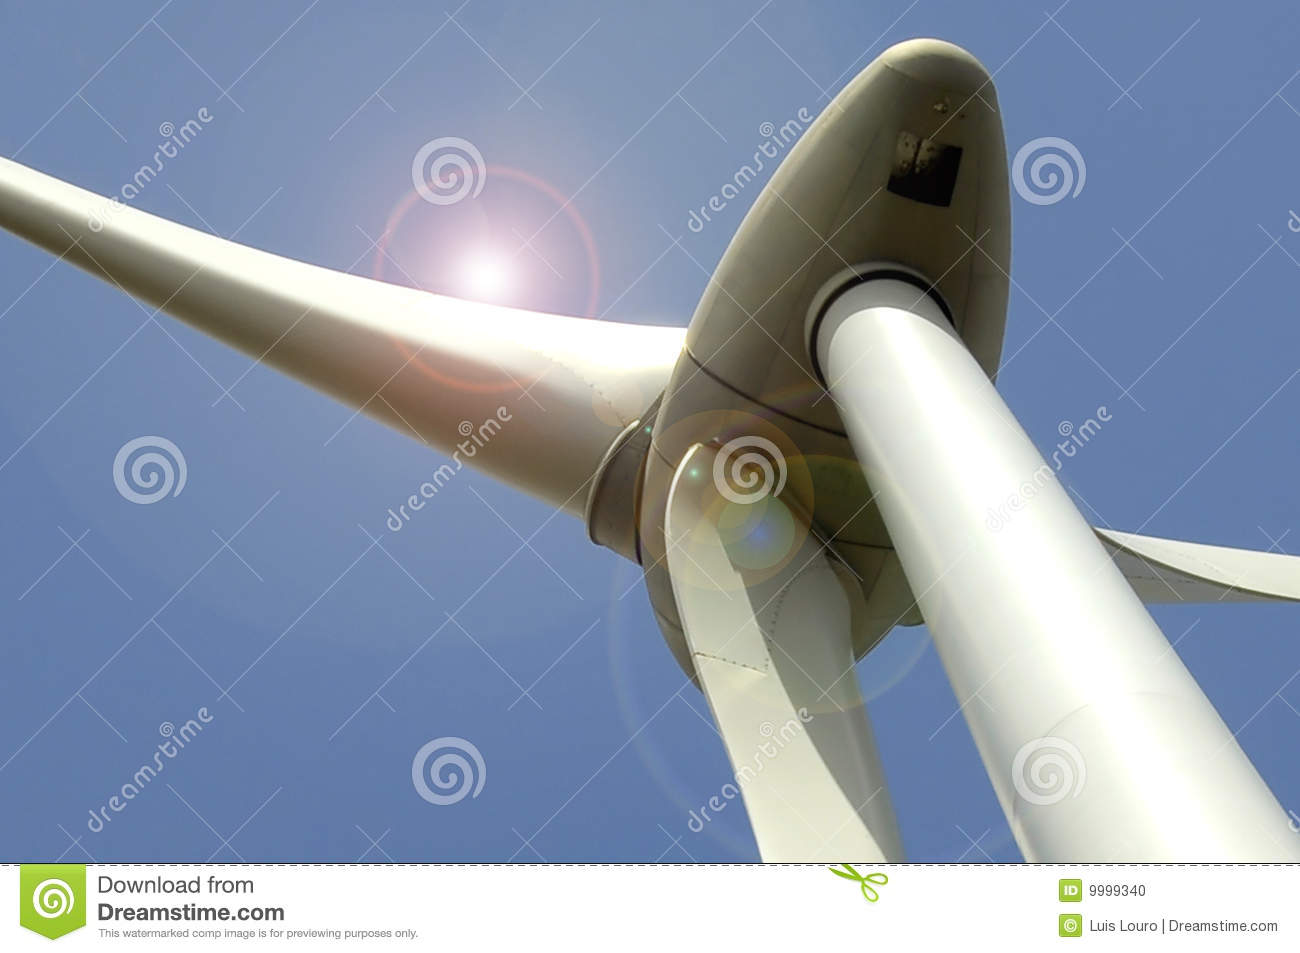 Eolic - wind turbine